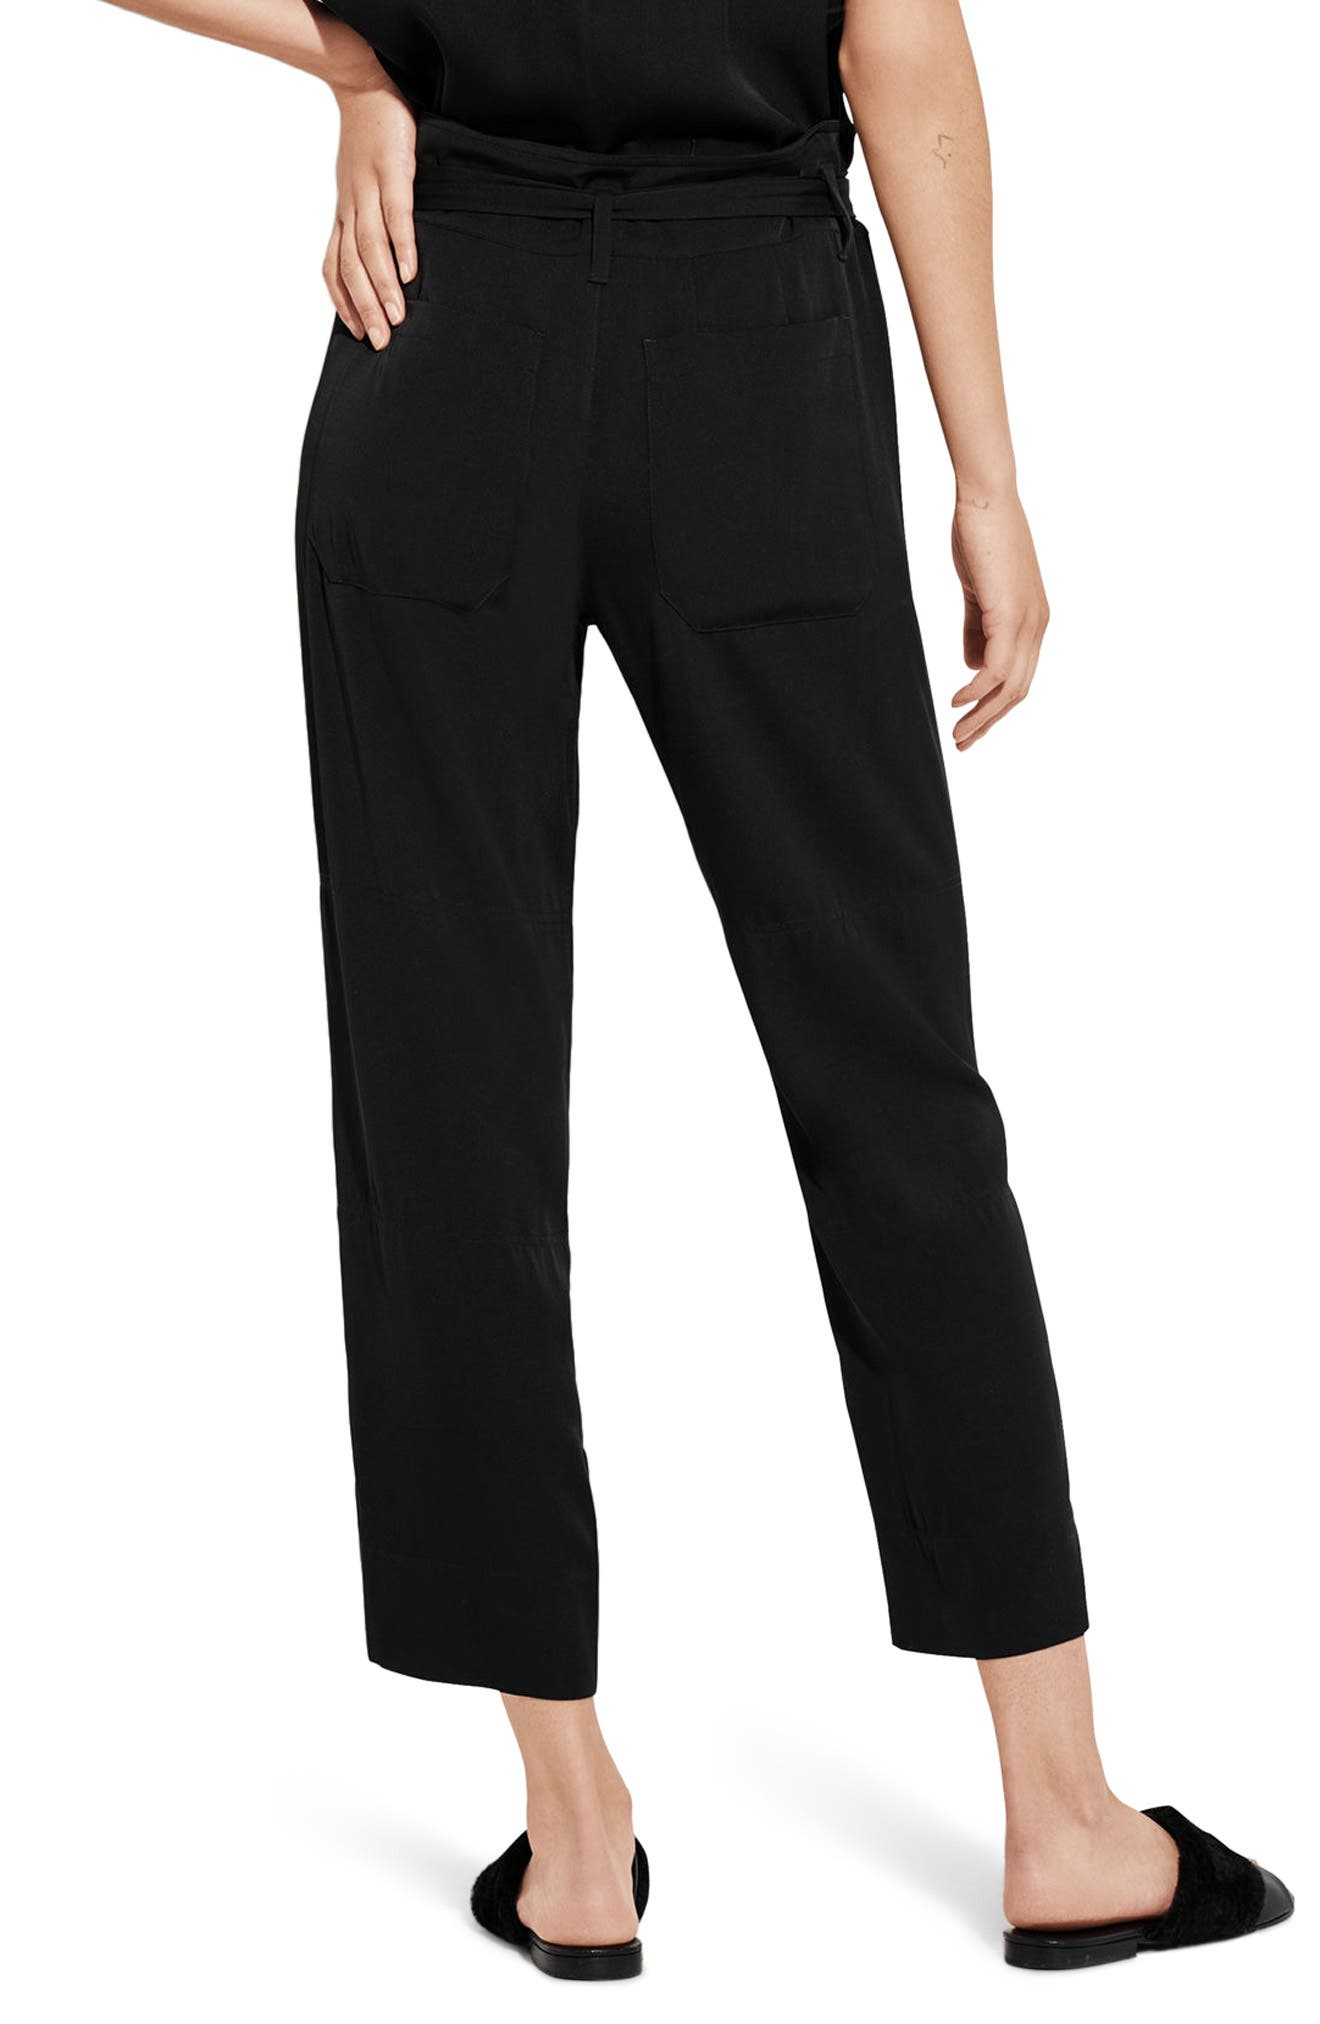 The Mirage High Waist Crop Straight Leg Pants,                             Alternate thumbnail 2, color,                             Black